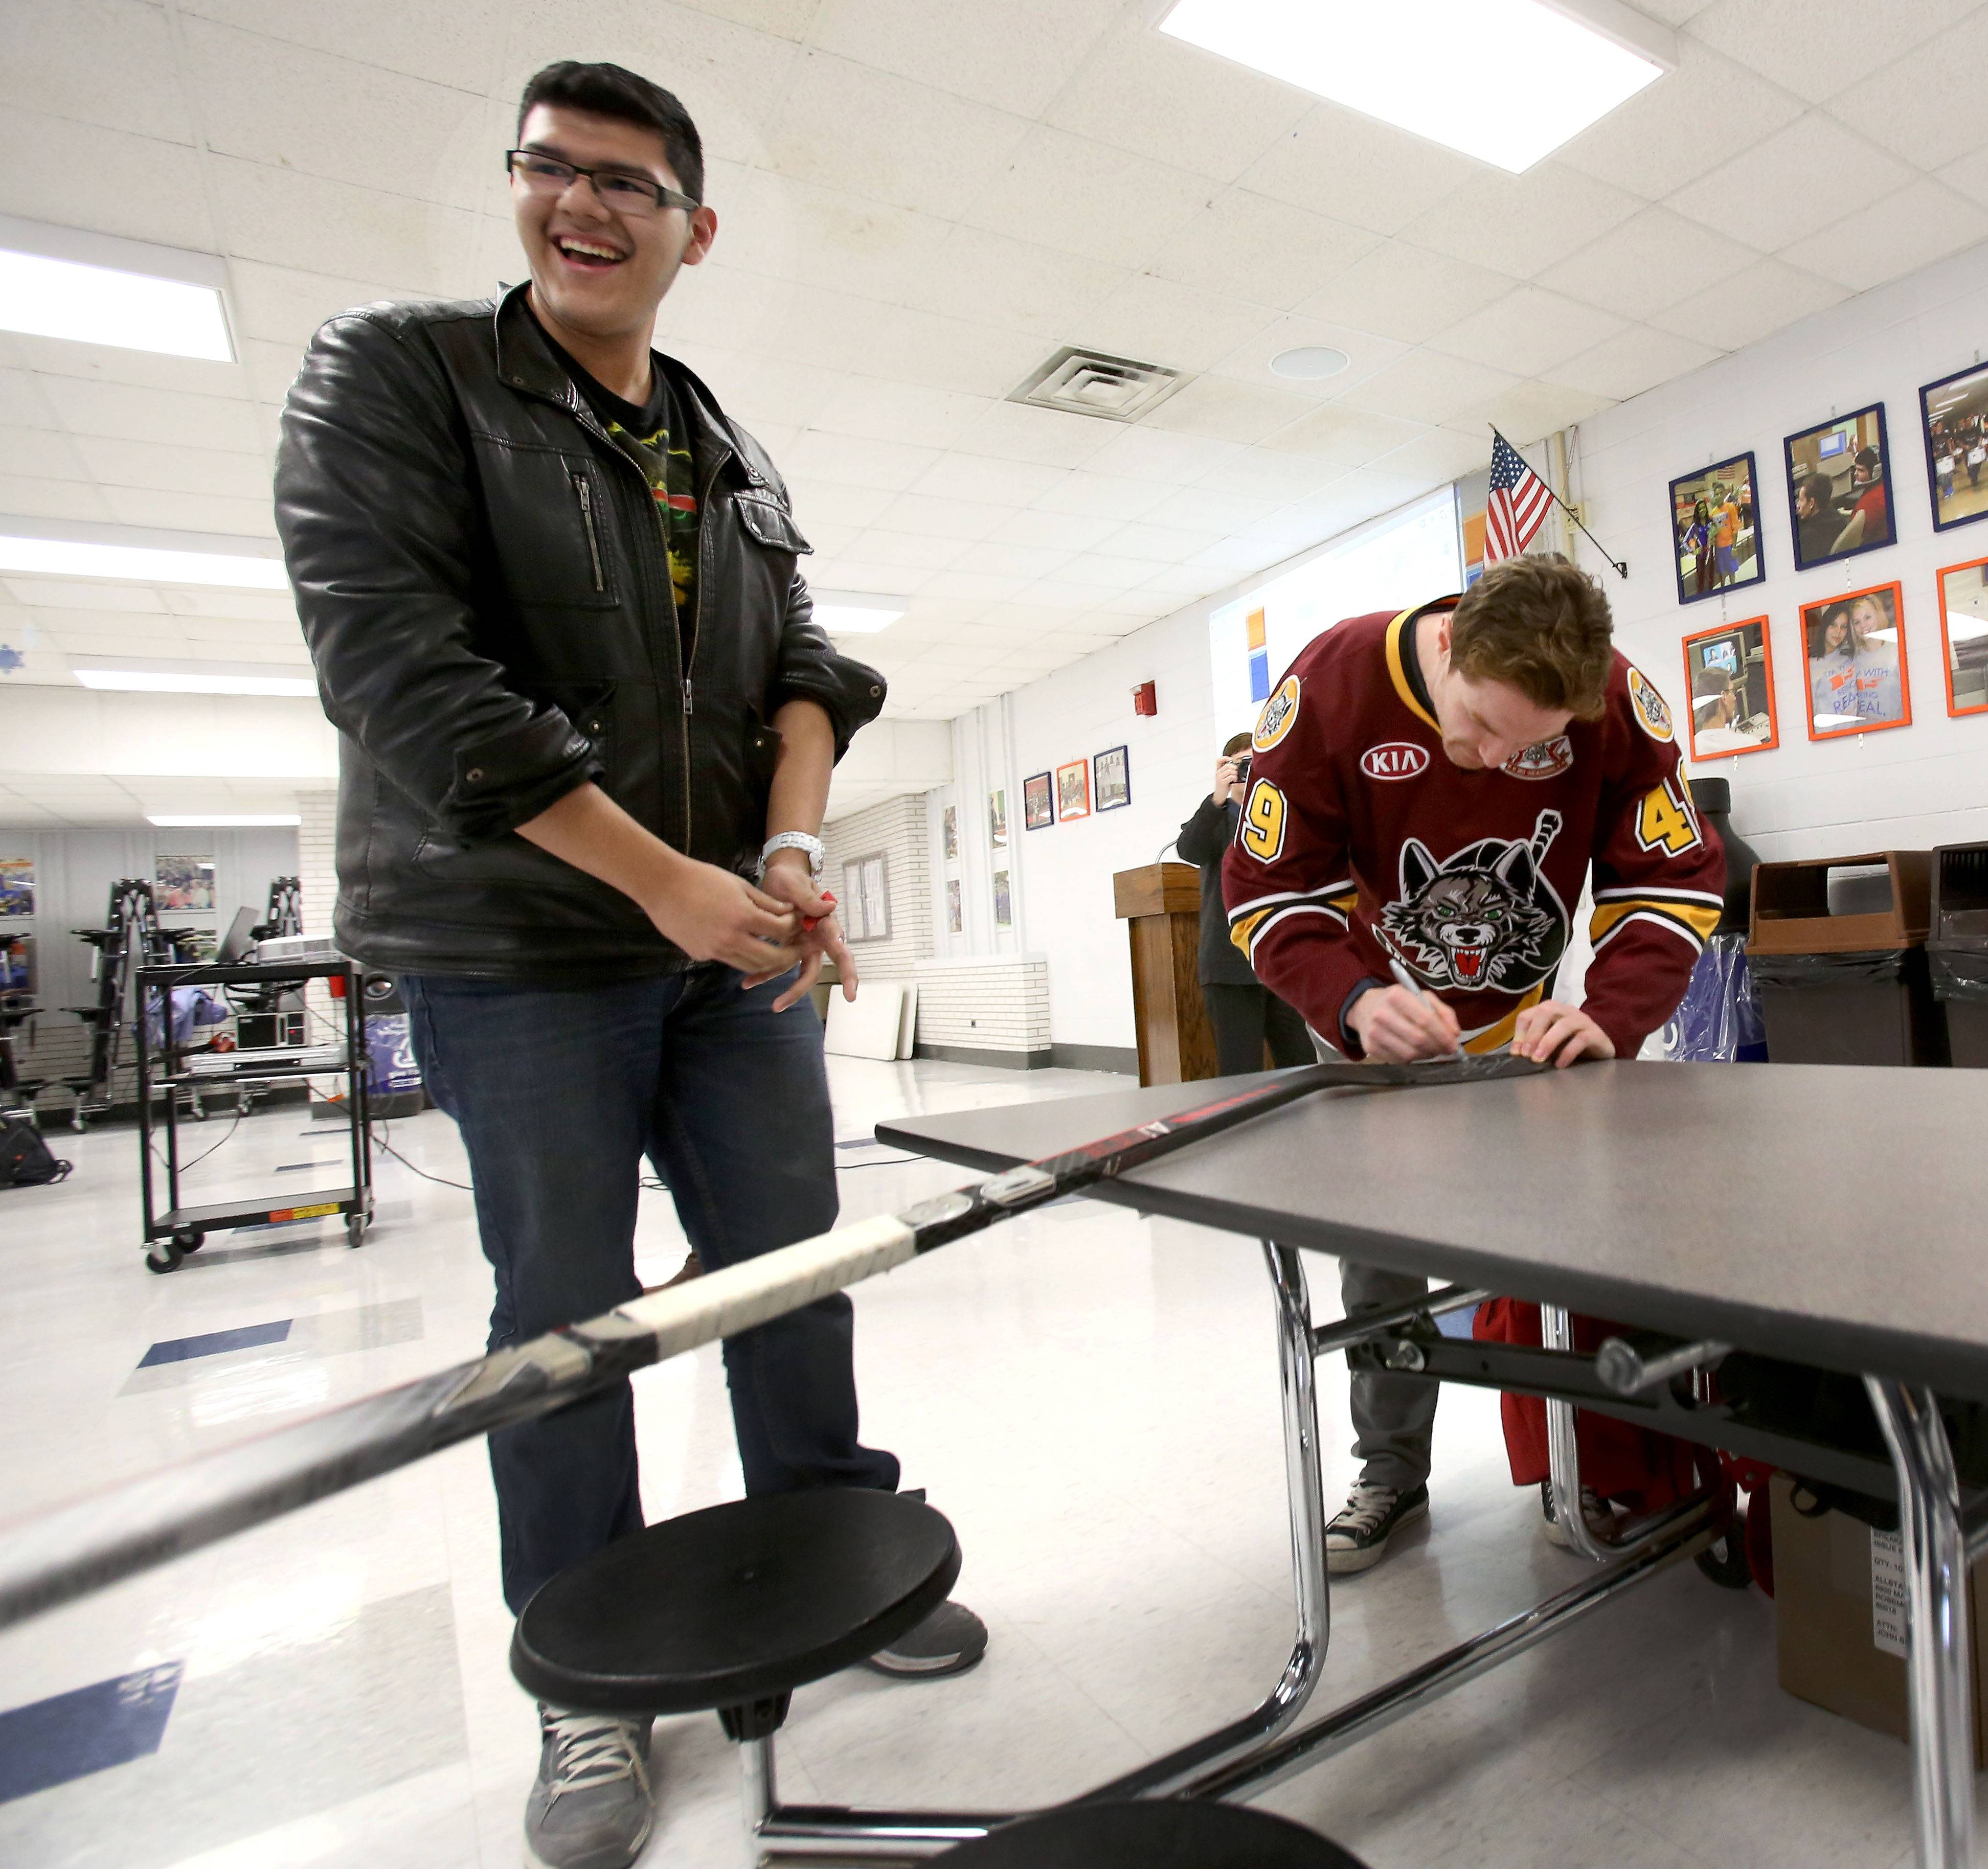 Fenton High School junior Pedro Huerta is all smiles Wednesday as Chicago Wolves center Alexandre Bolduc signs a hockey stick for him. Pedro won it in a raffle as Bolduc met with students studying French at the Bensenville school.